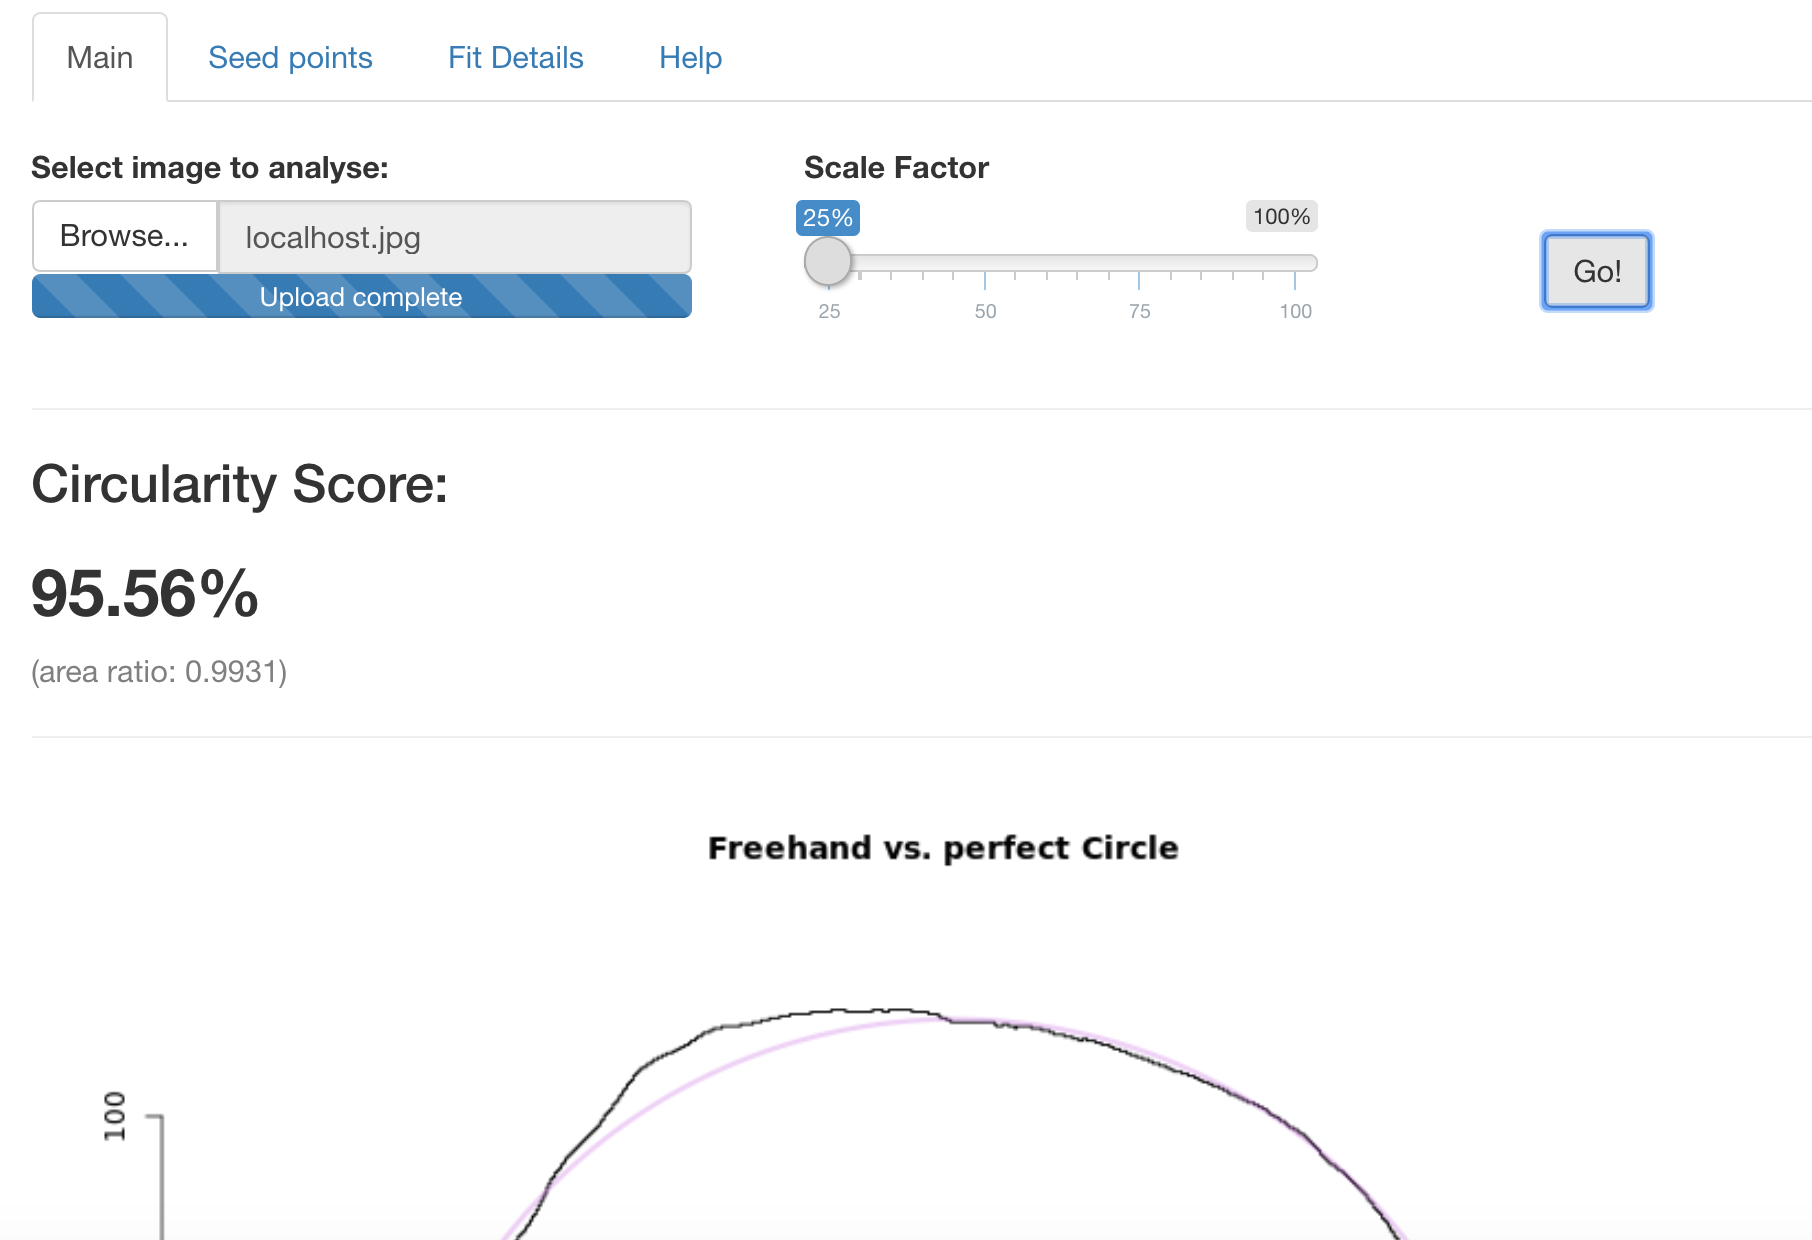 A Shiny app for your perfect circle